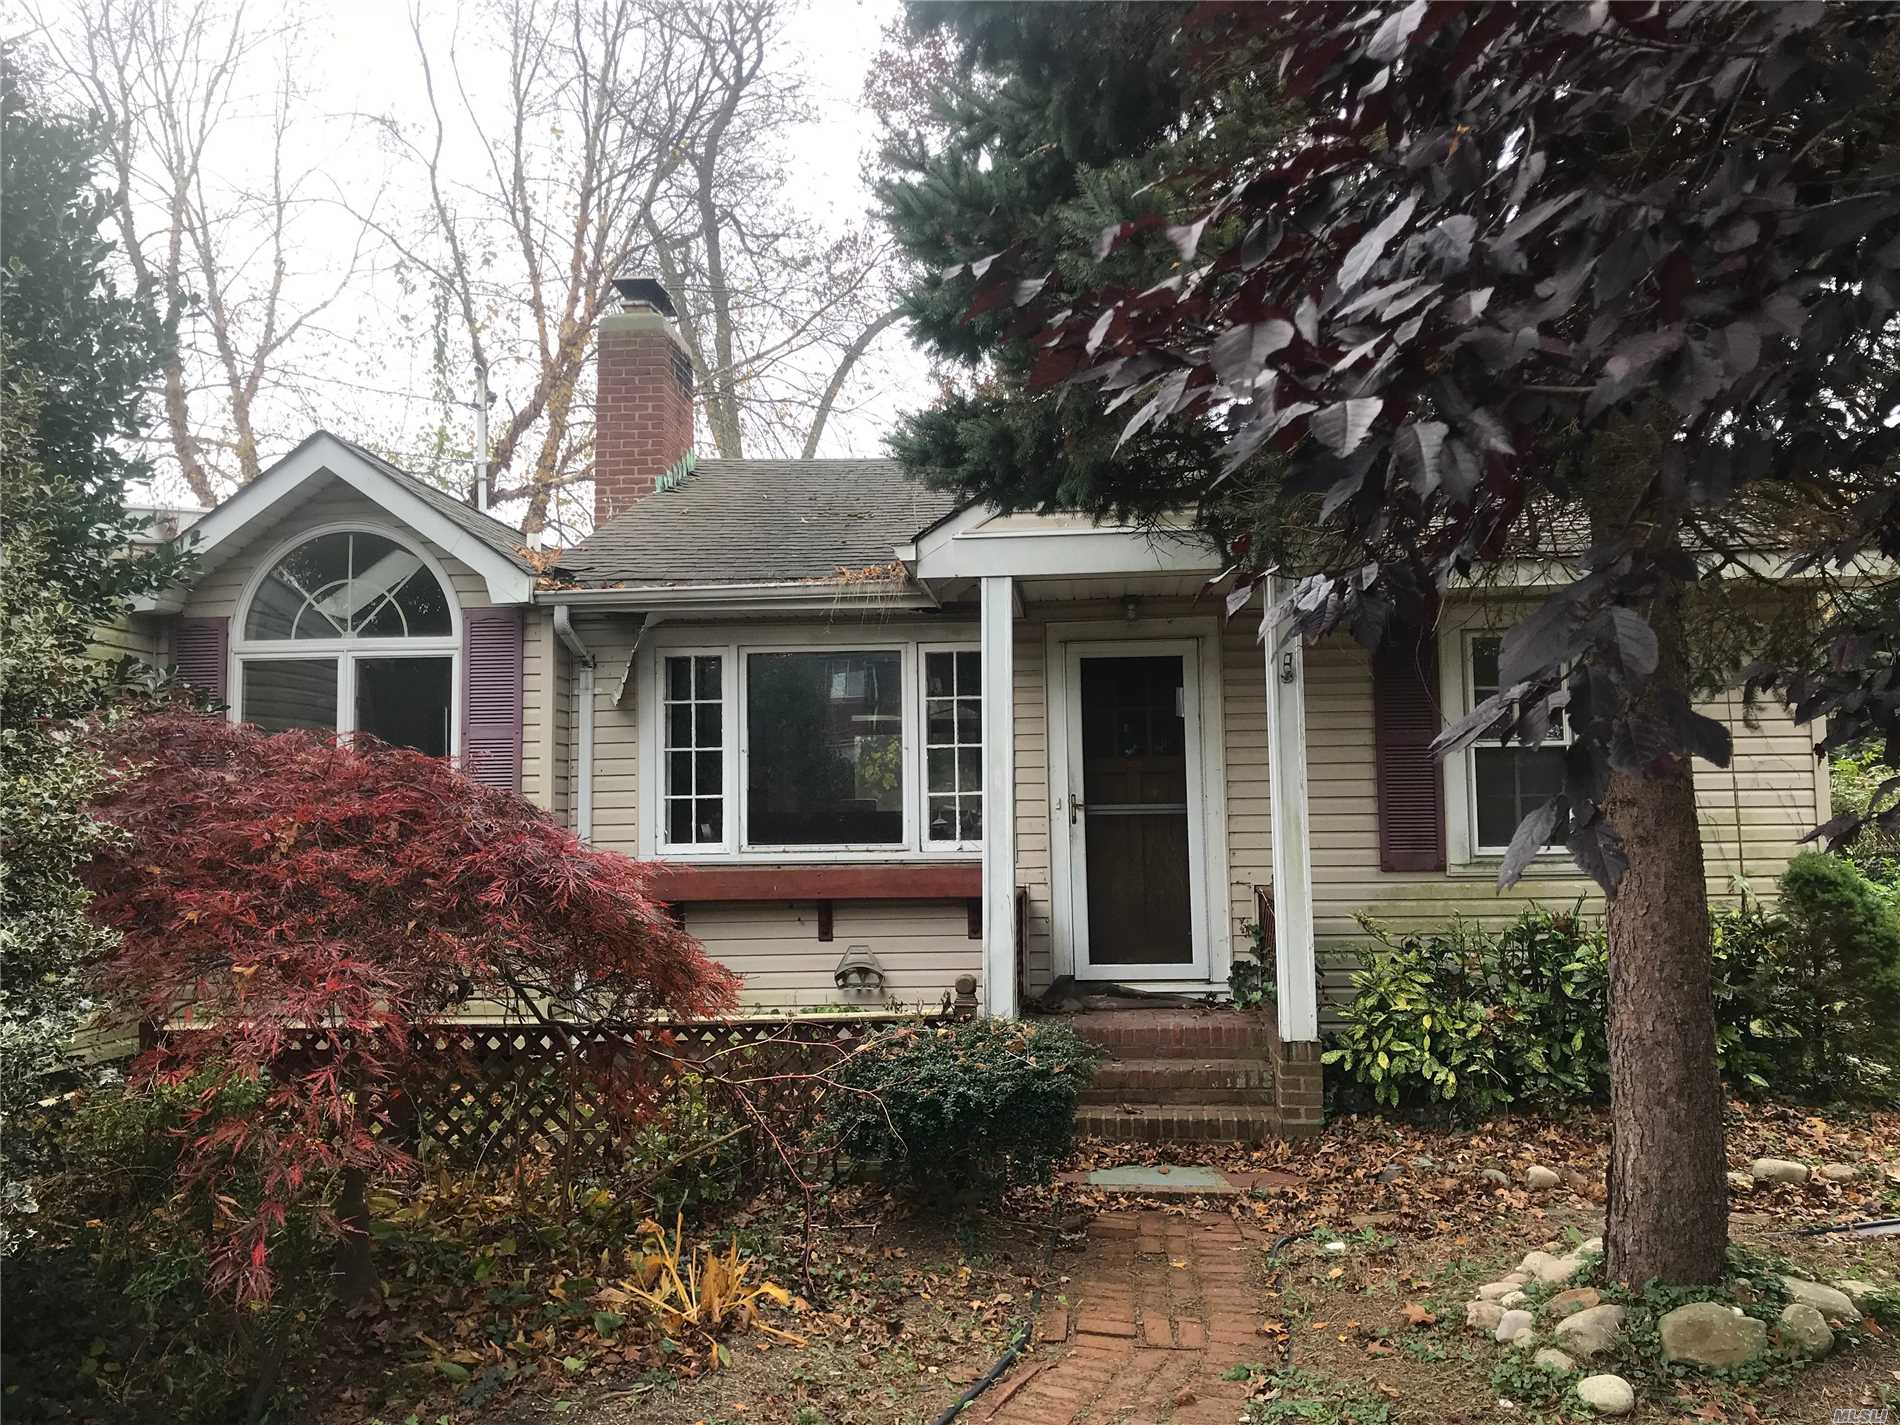 Wide Line Ranch, 4 Bedrooms, 2 Full Baths, Large Lr/Fpl, Dr, Kitchen, Sunroom/Jacucci, Utility Rm, Part Basement. Located On Level Lot And Quiet Street. Close To Transportation, Shopping, Town Parks And North Shore Beaches. Won't Last